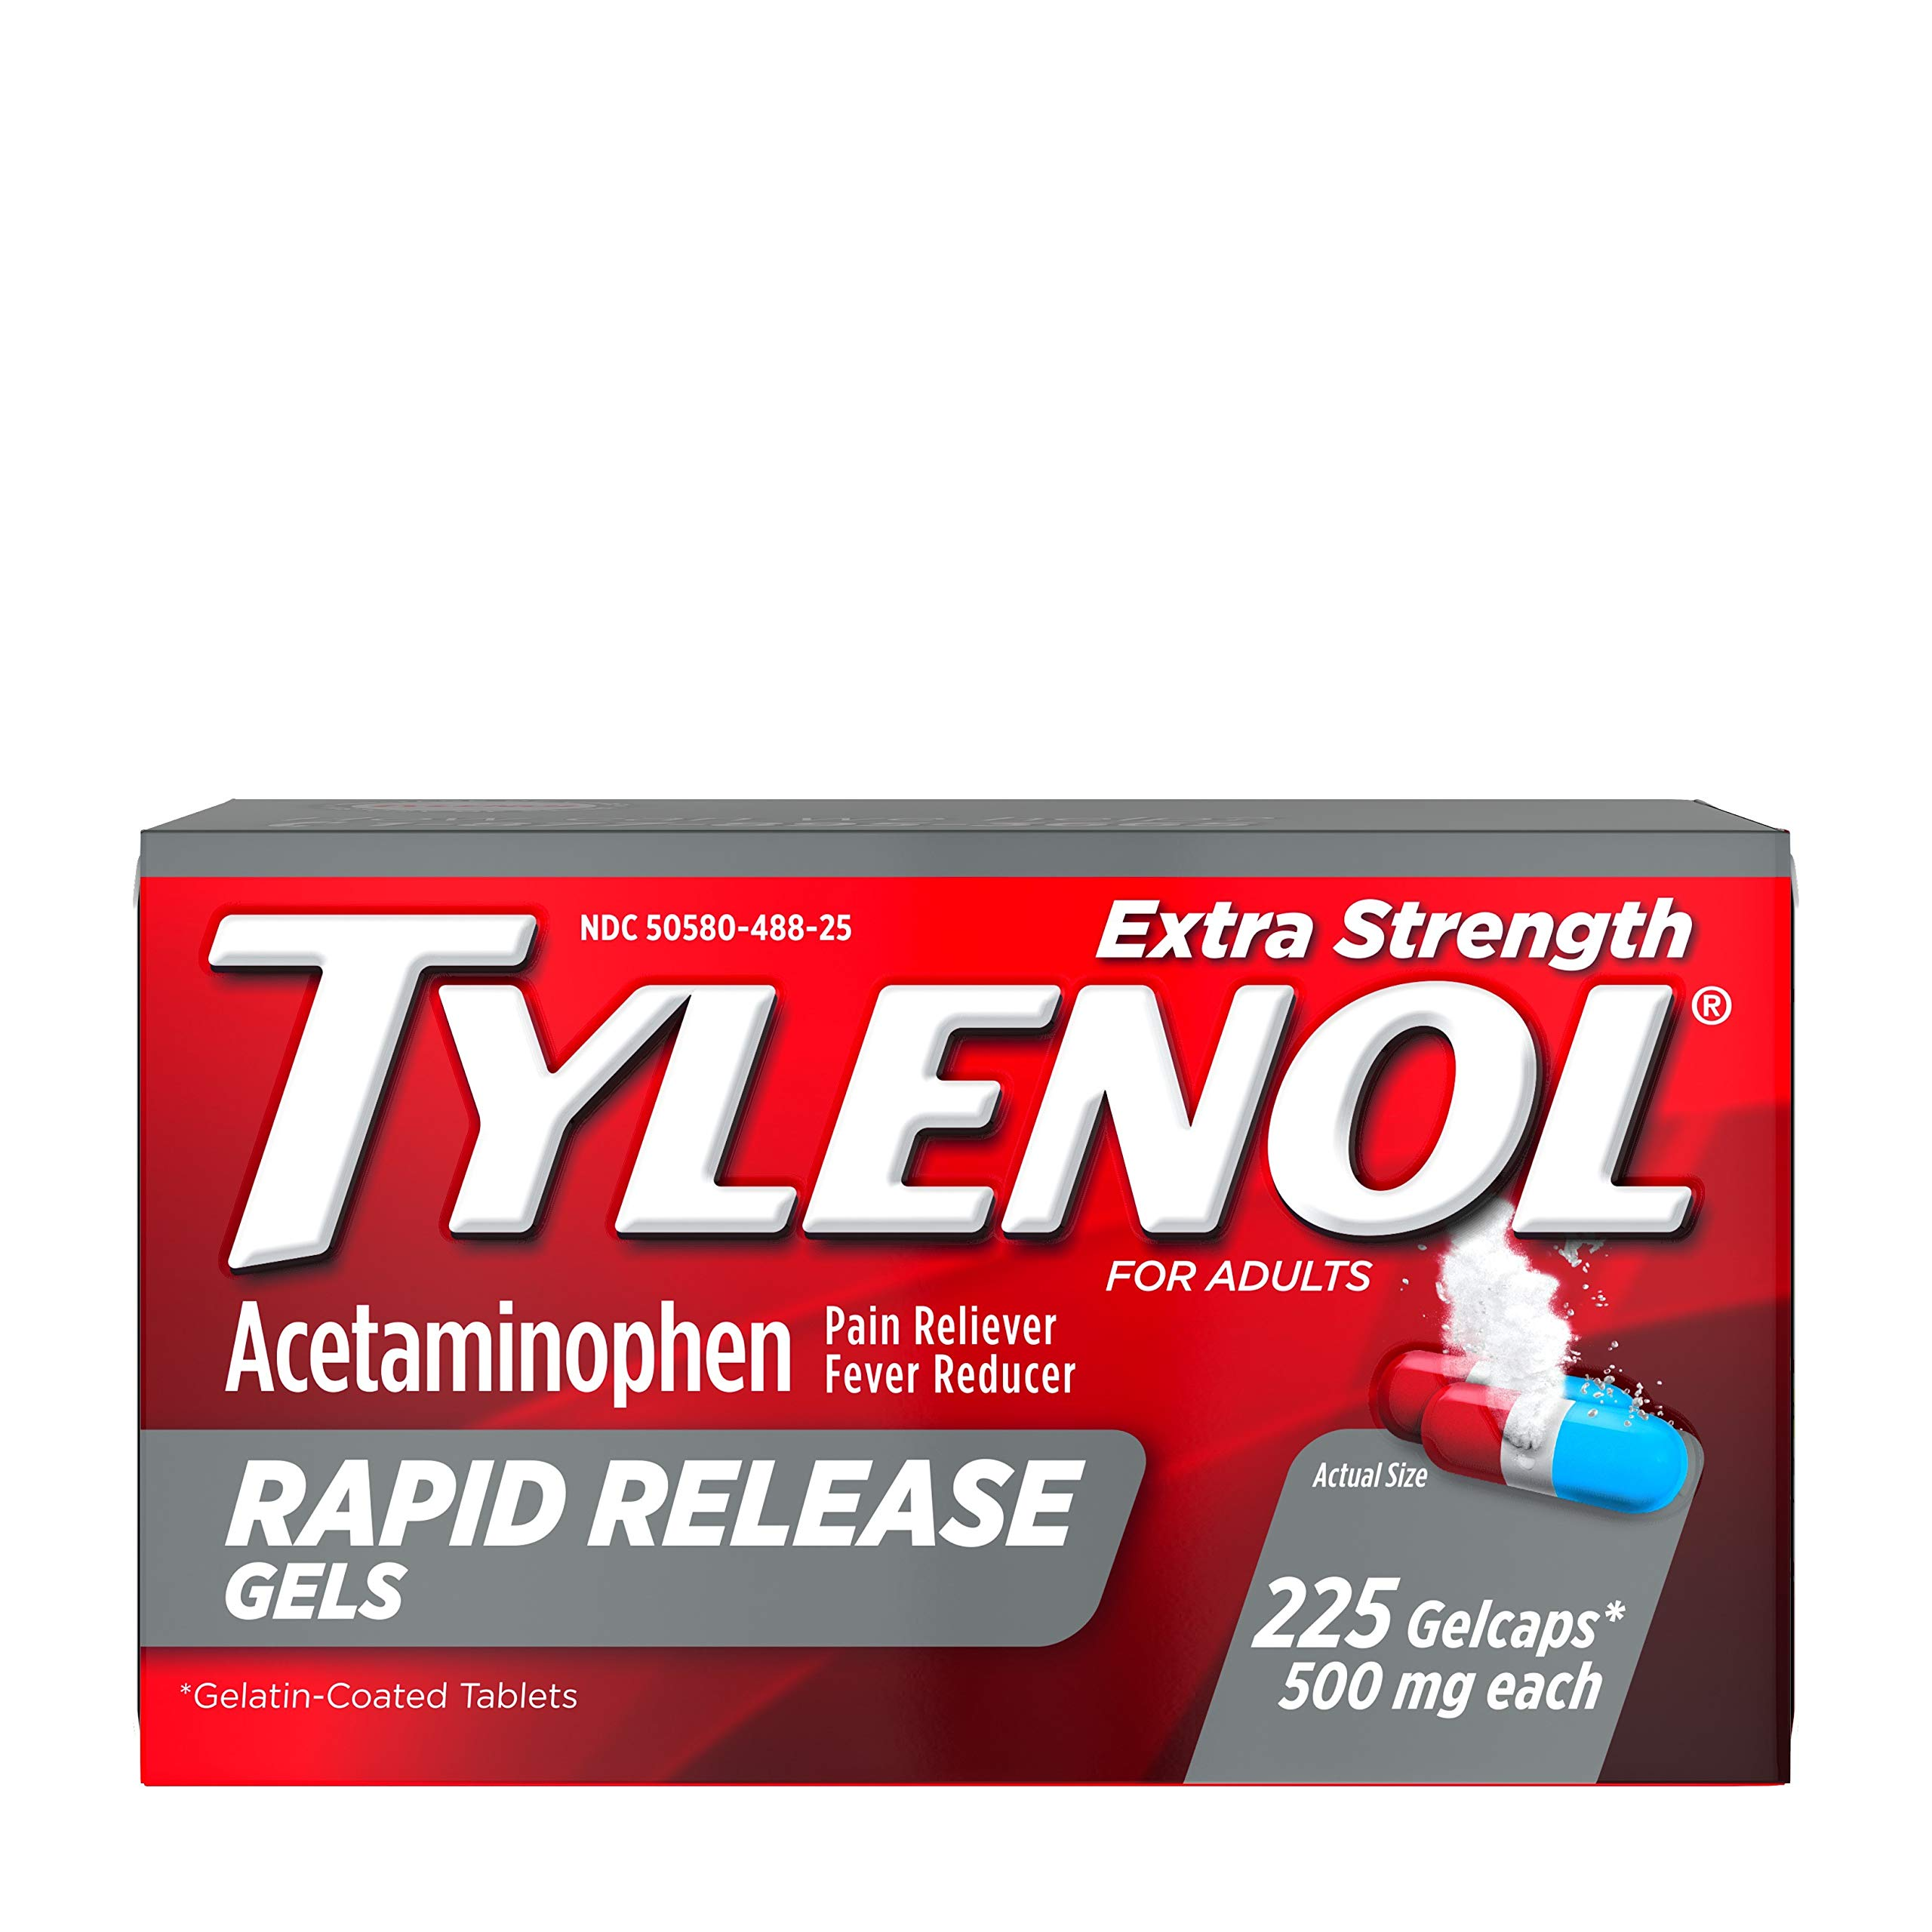 Tylenol Extra Strength Rapid Release Gels with Acetaminophen, Pain Reliever & Fever Reducer, 225 ct by Tylenol